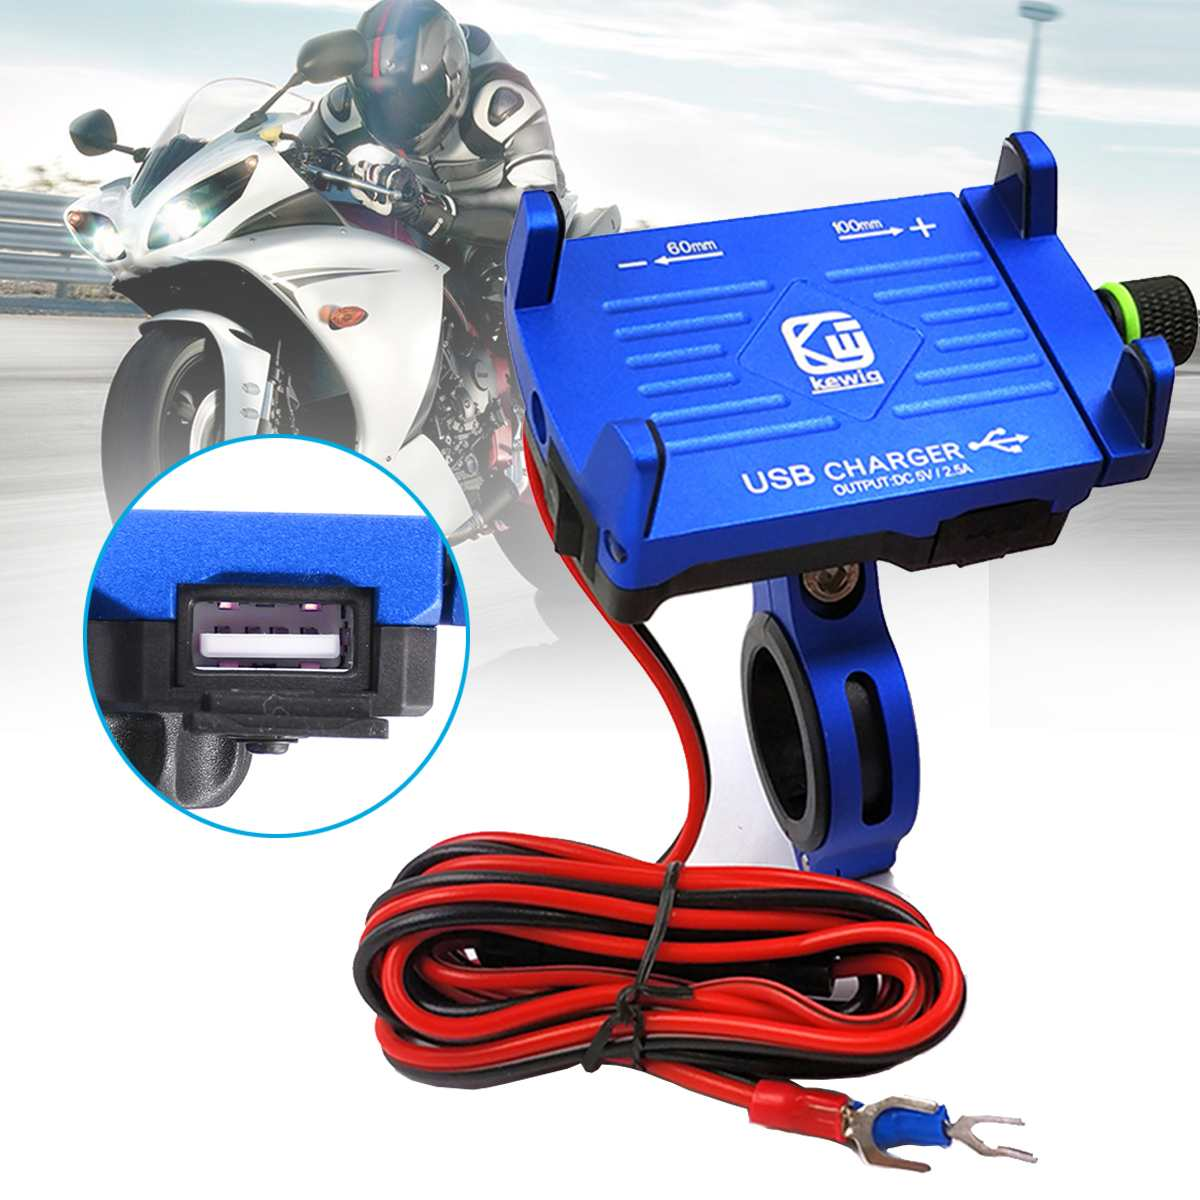 """INSMA for 3.5""""-6.2"""" Phone Motorcycle Holder USB Fast Charing Charger Holder Stand for Electric Motorbike Mountain Bike Holder"""